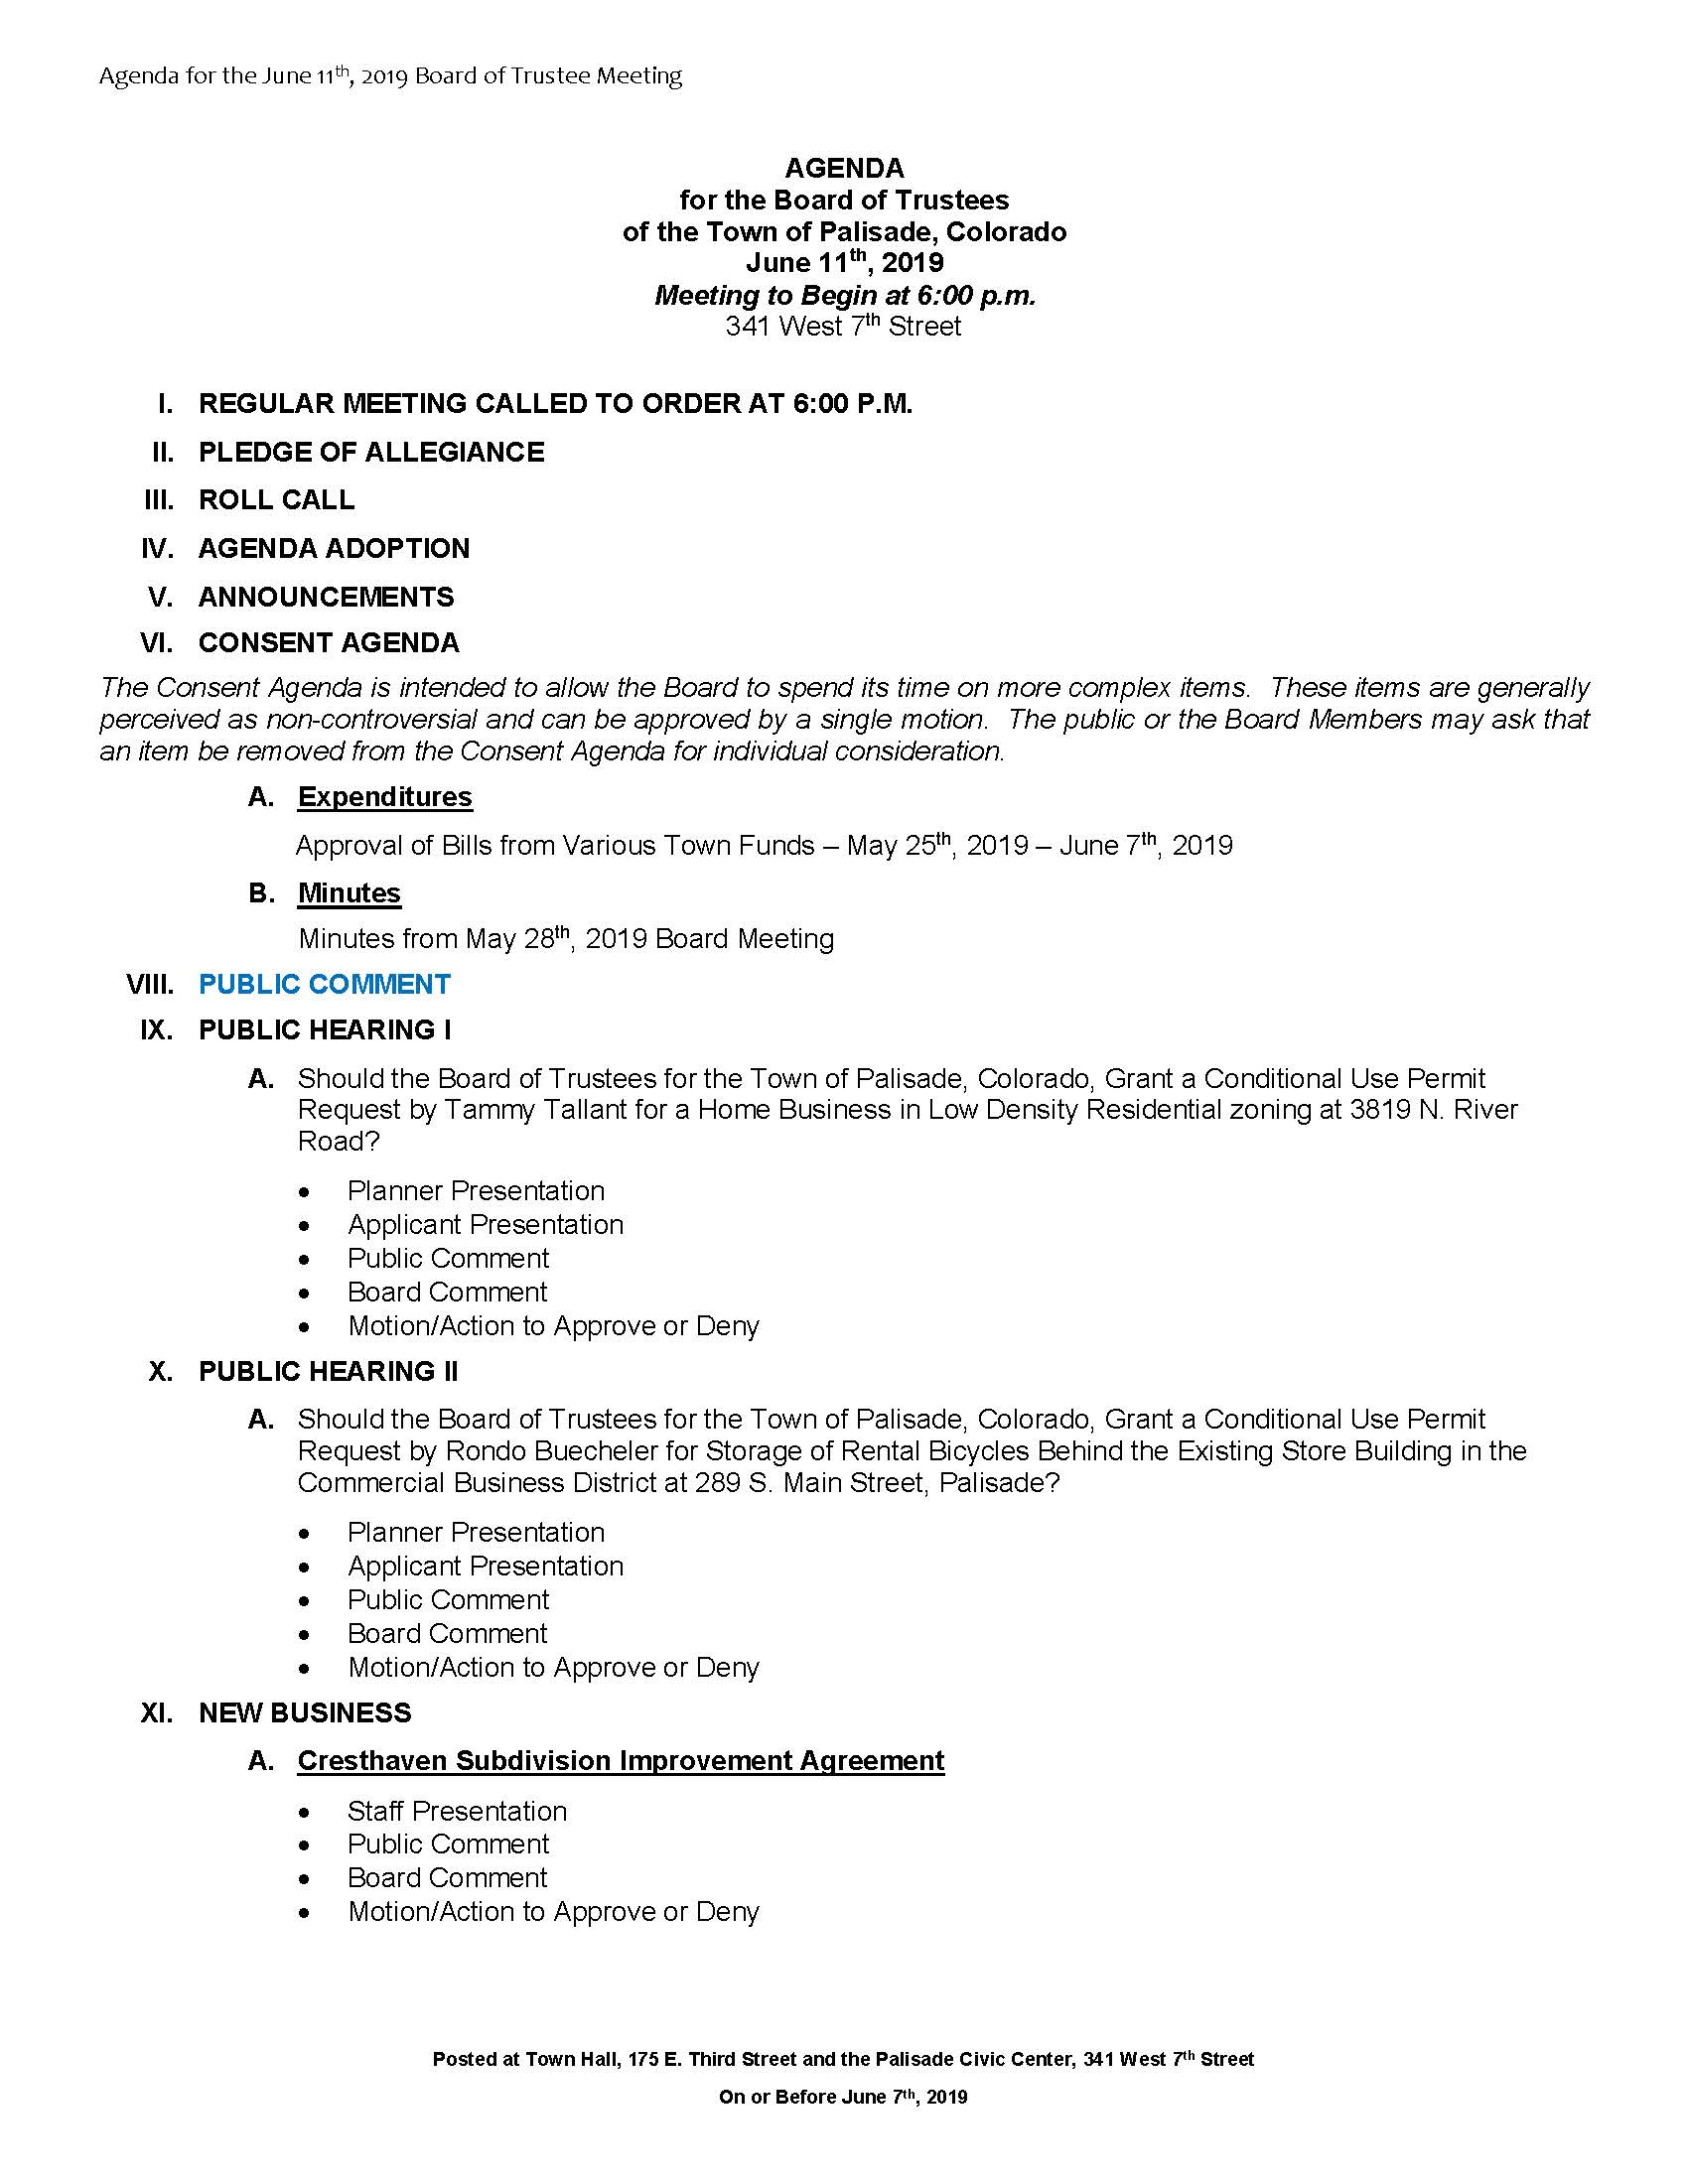 June 11th 2019 Board Meeting Agenda Page 1